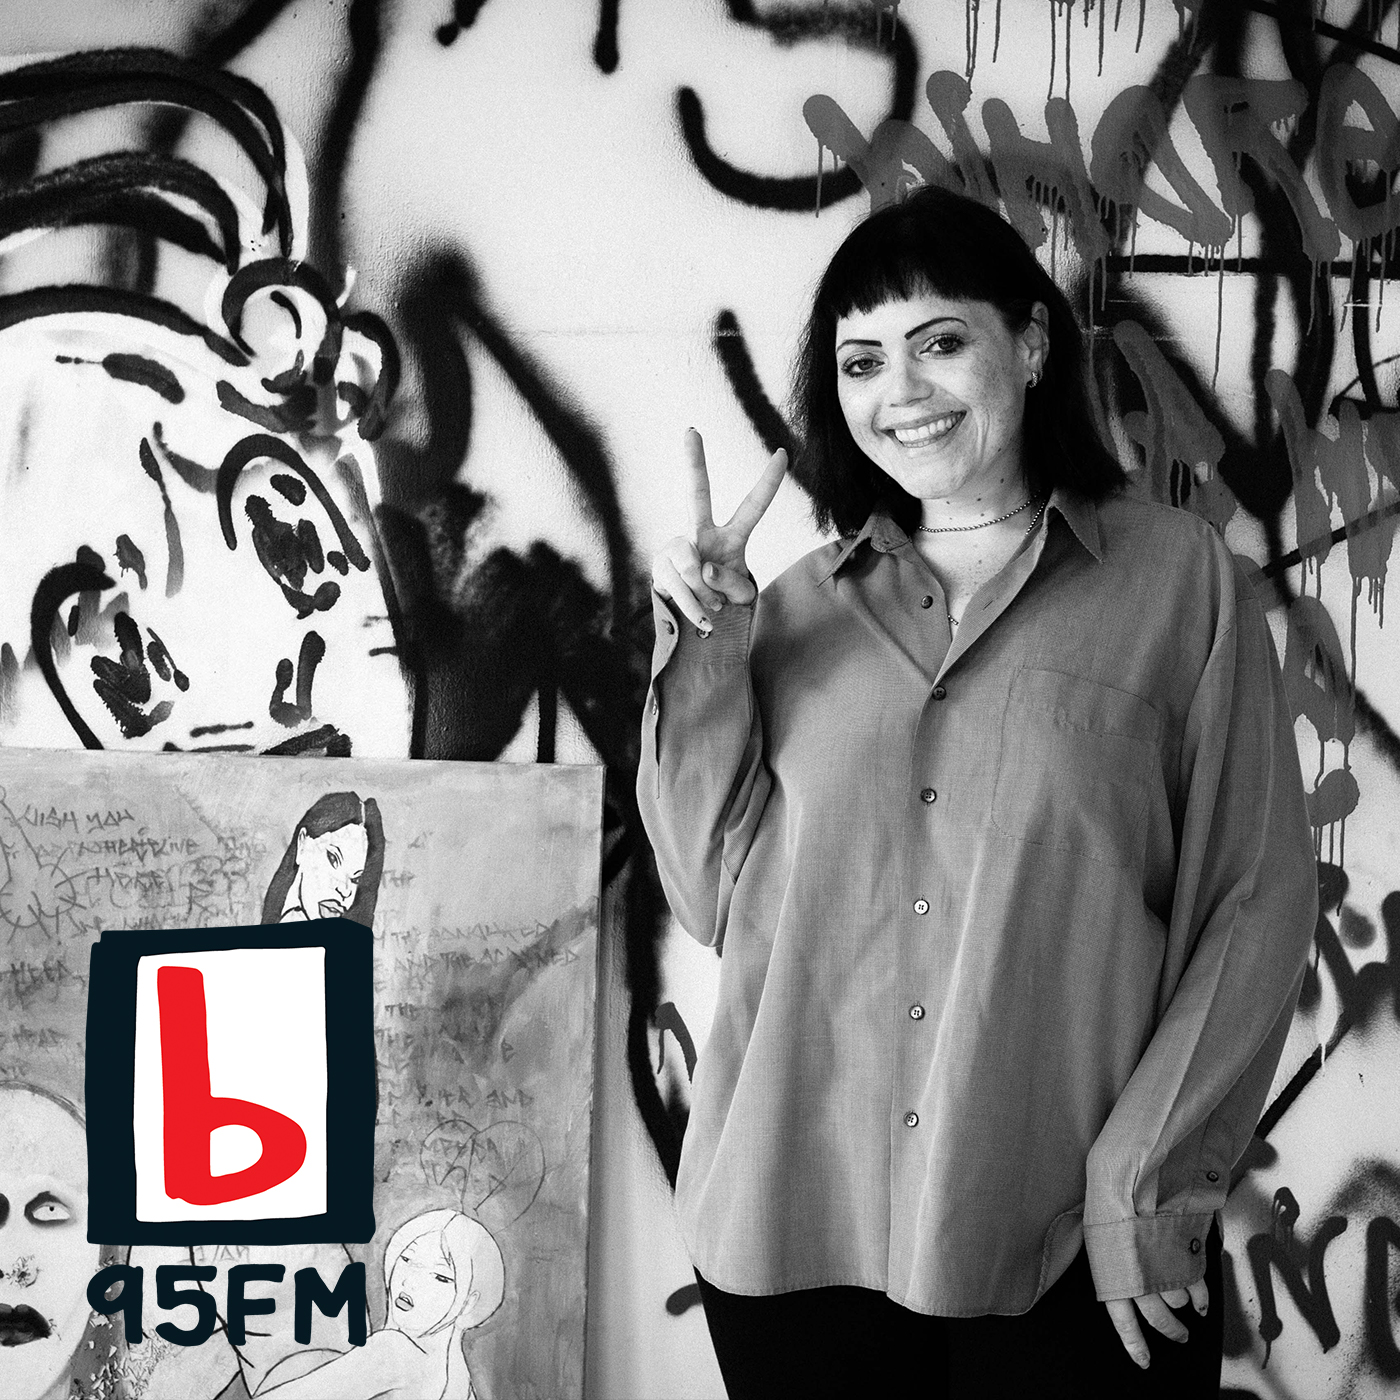 95bfmconz 95bFM The Originator Copyright C 1998 2016 Selected Audio On Demand From This Alternative Radio Station In Auckland